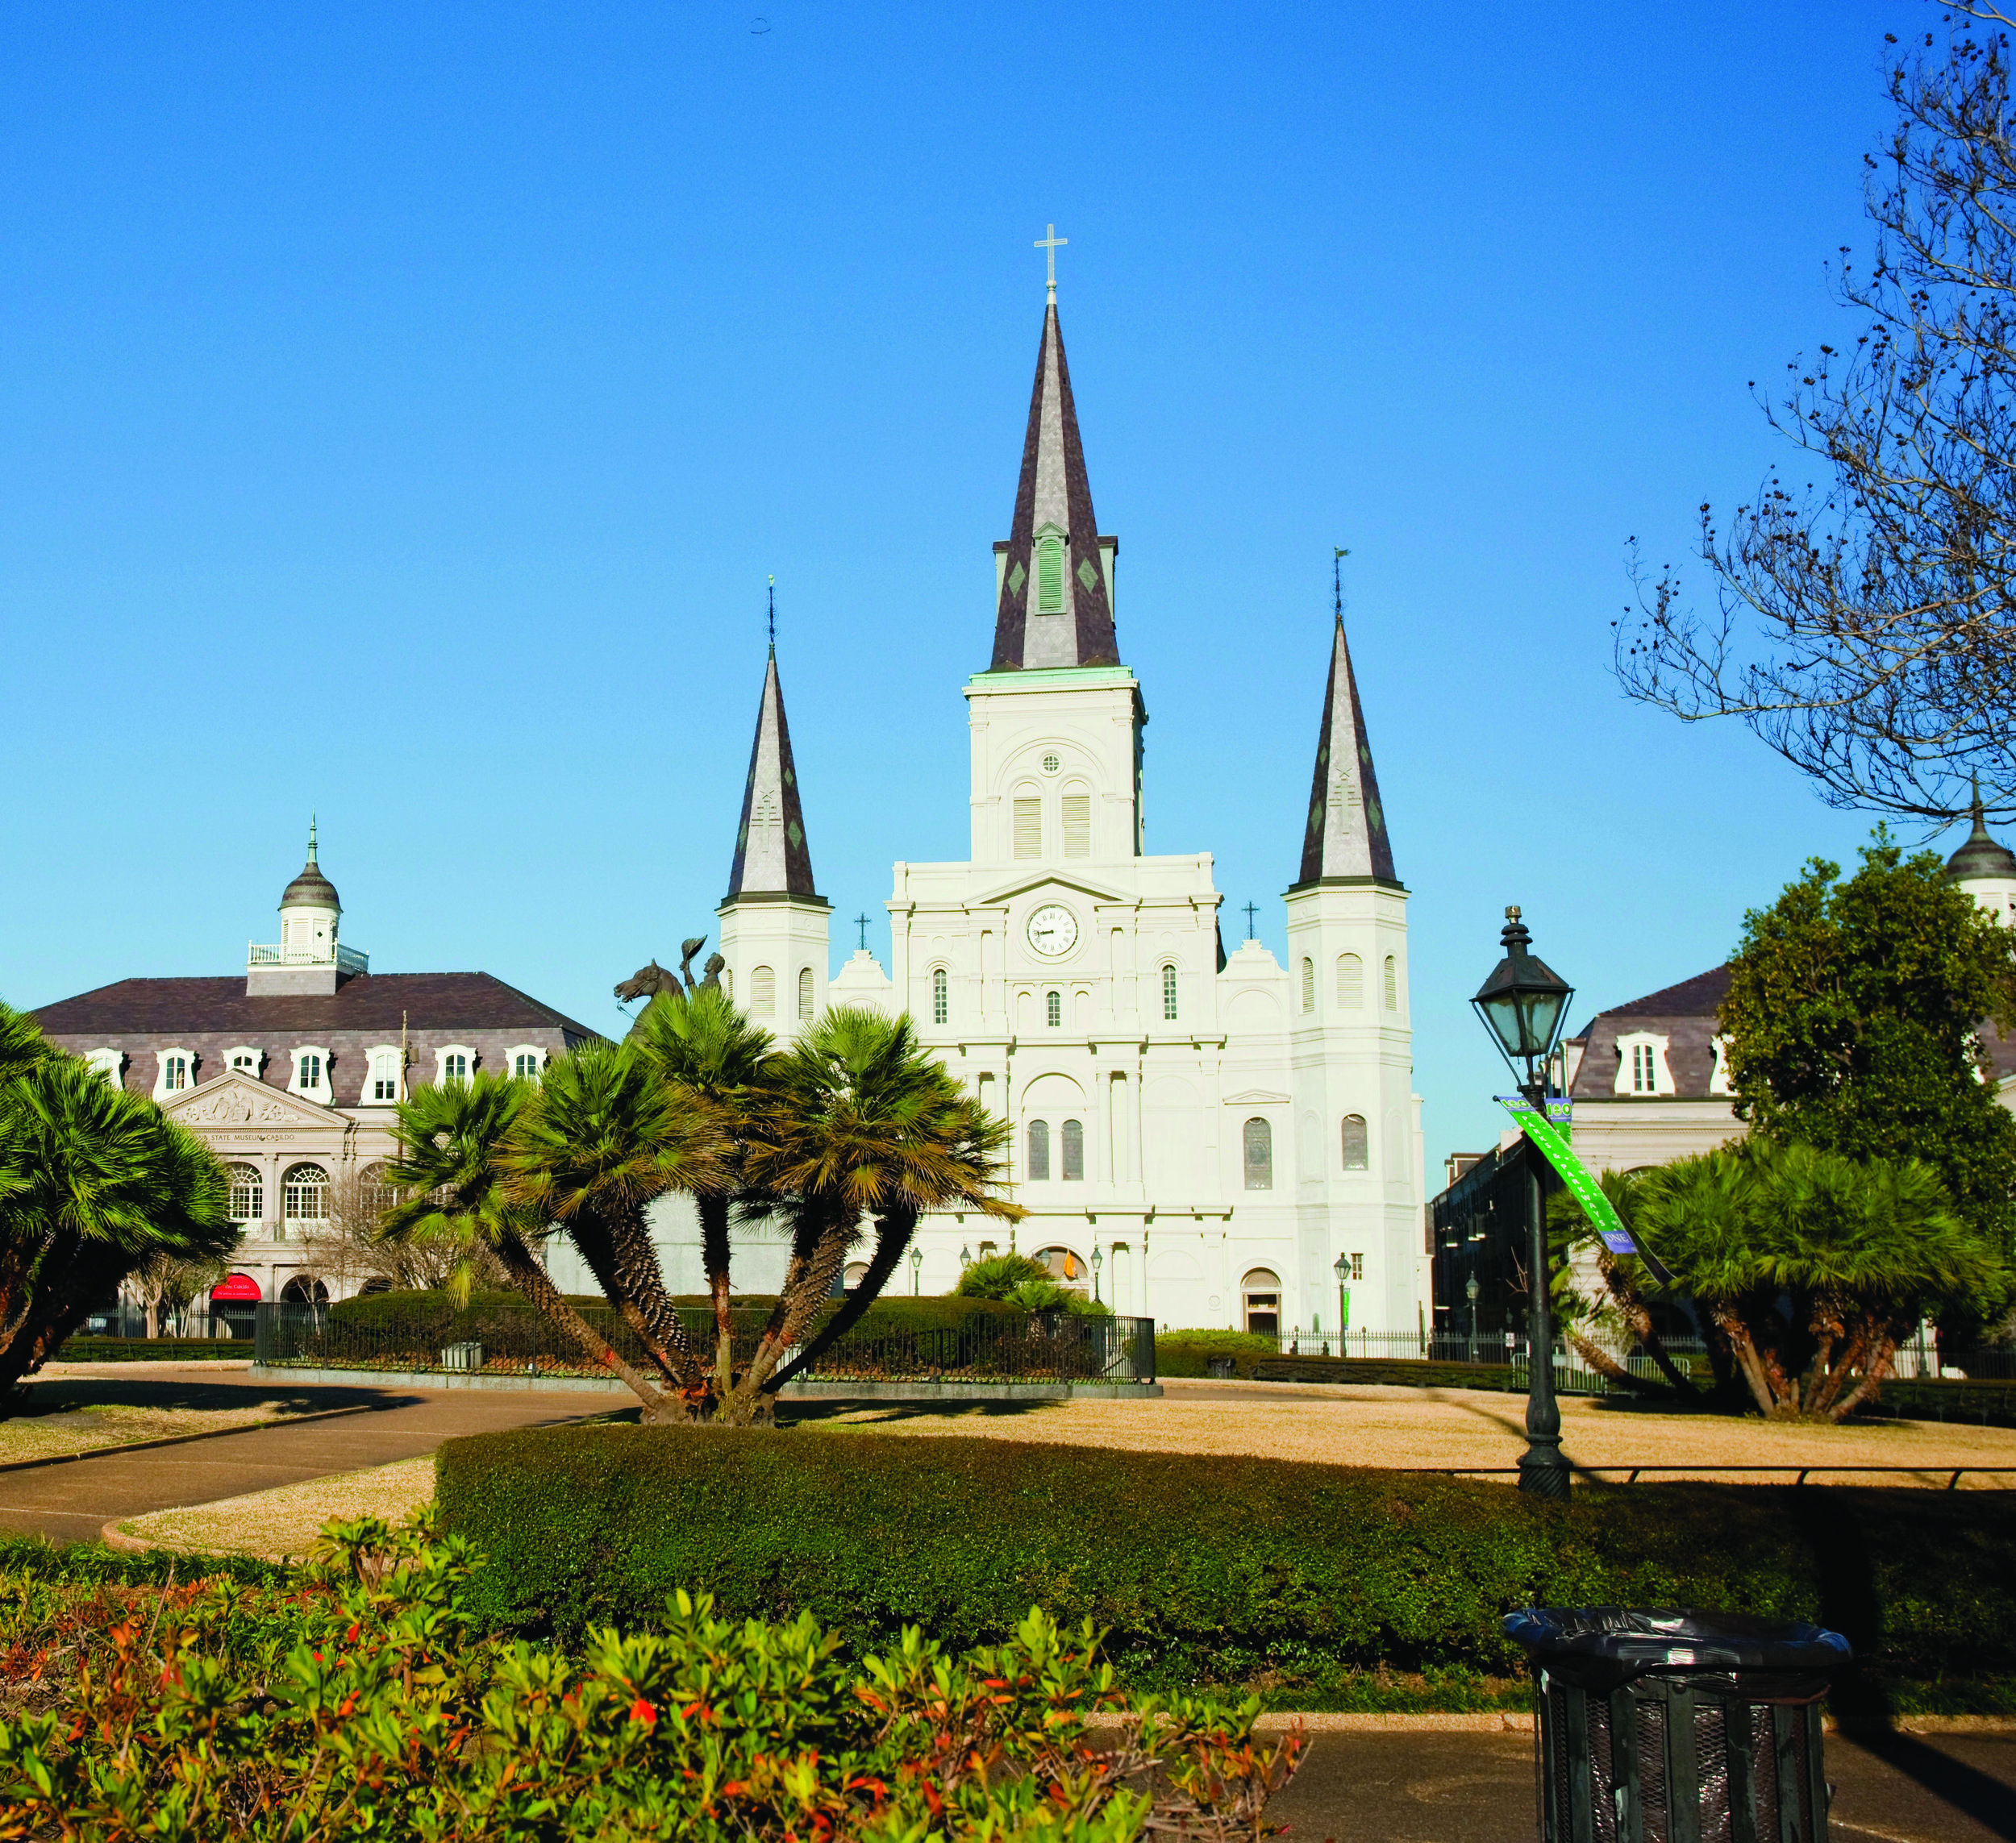 New Orleans - Celebrating Life, Music and Fine Cuisinein the Big Easy